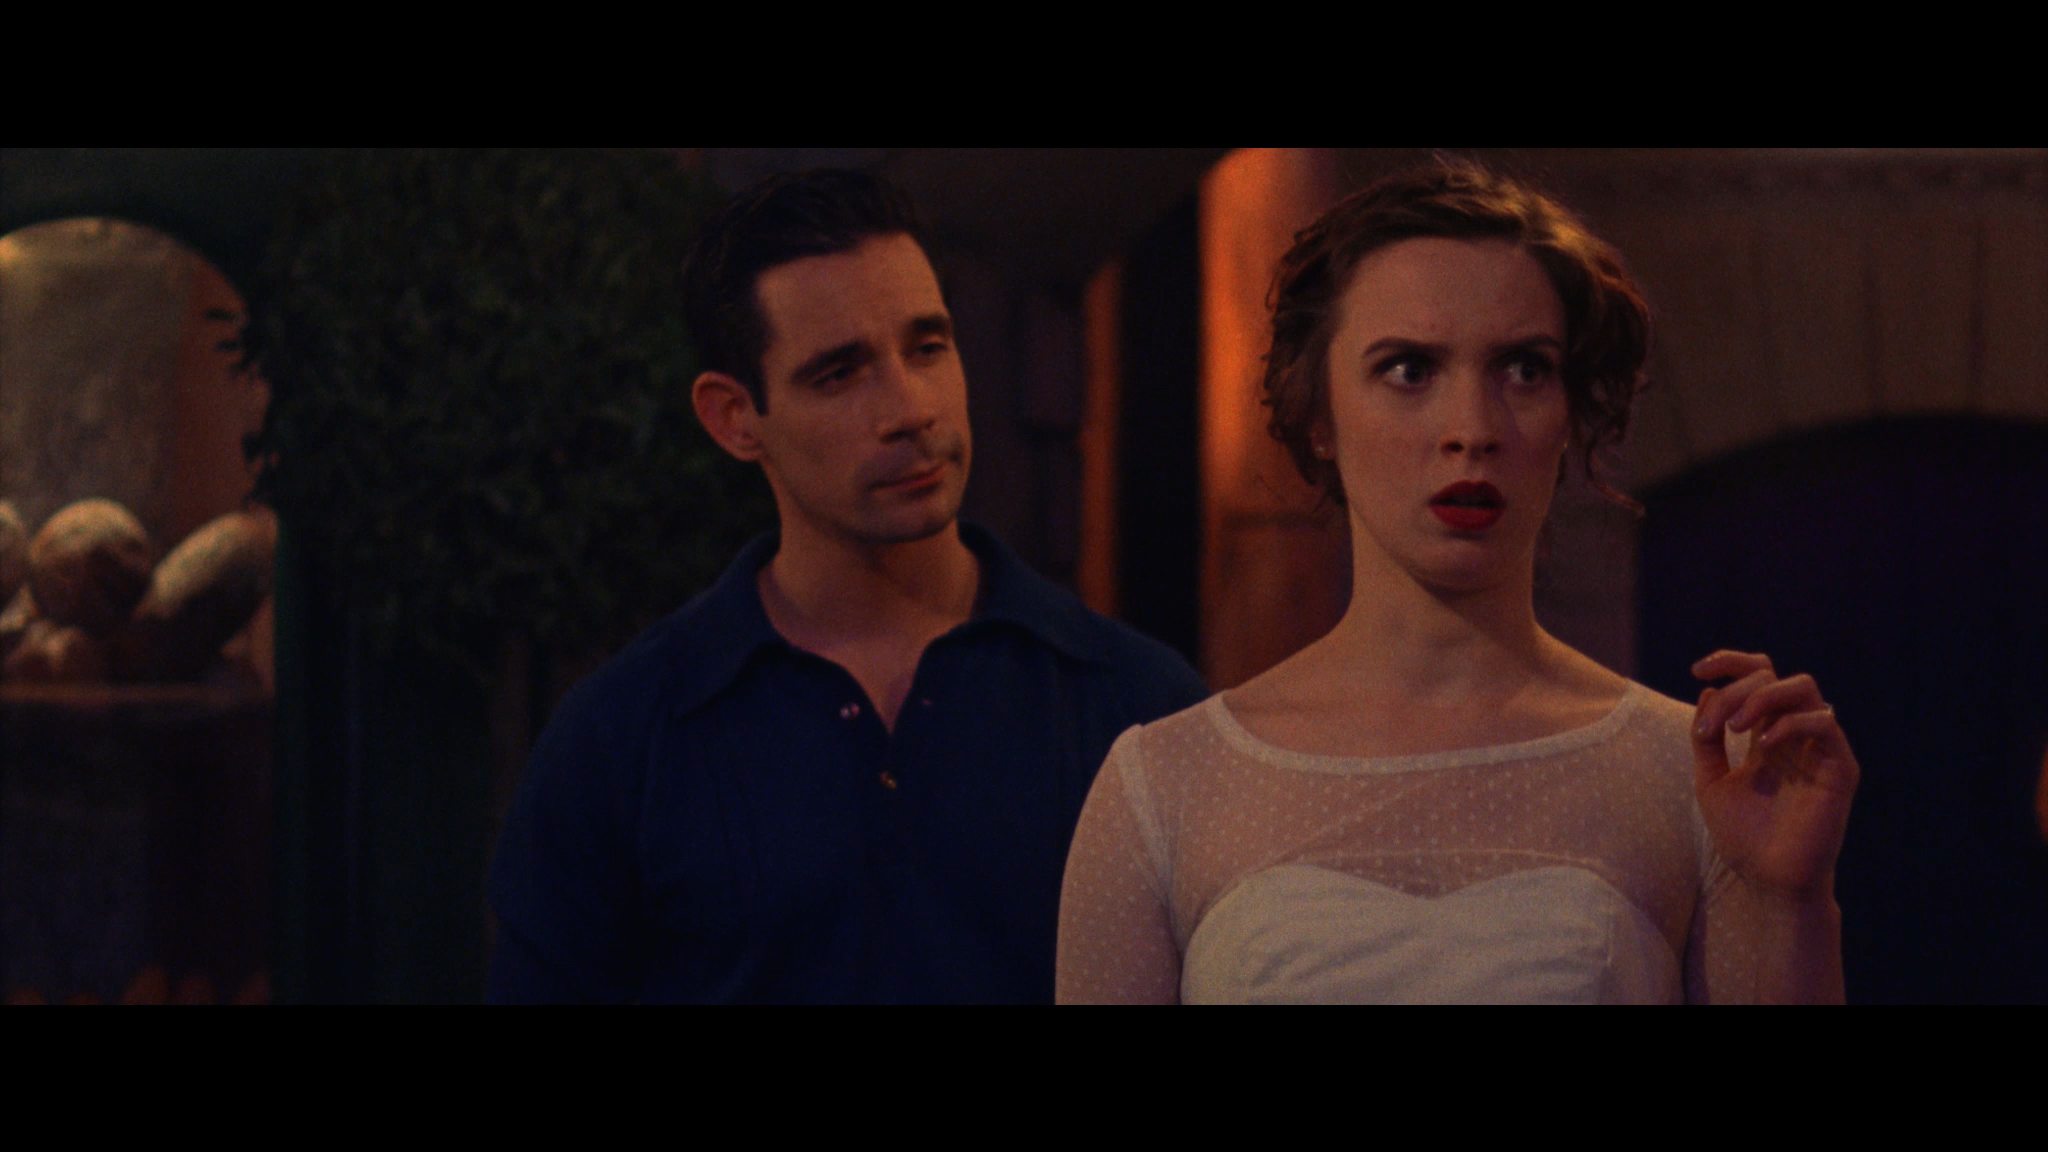 Emily (Sarah Swire) suddenly finds herself in Paris with the charming Gene (Dan Burton).